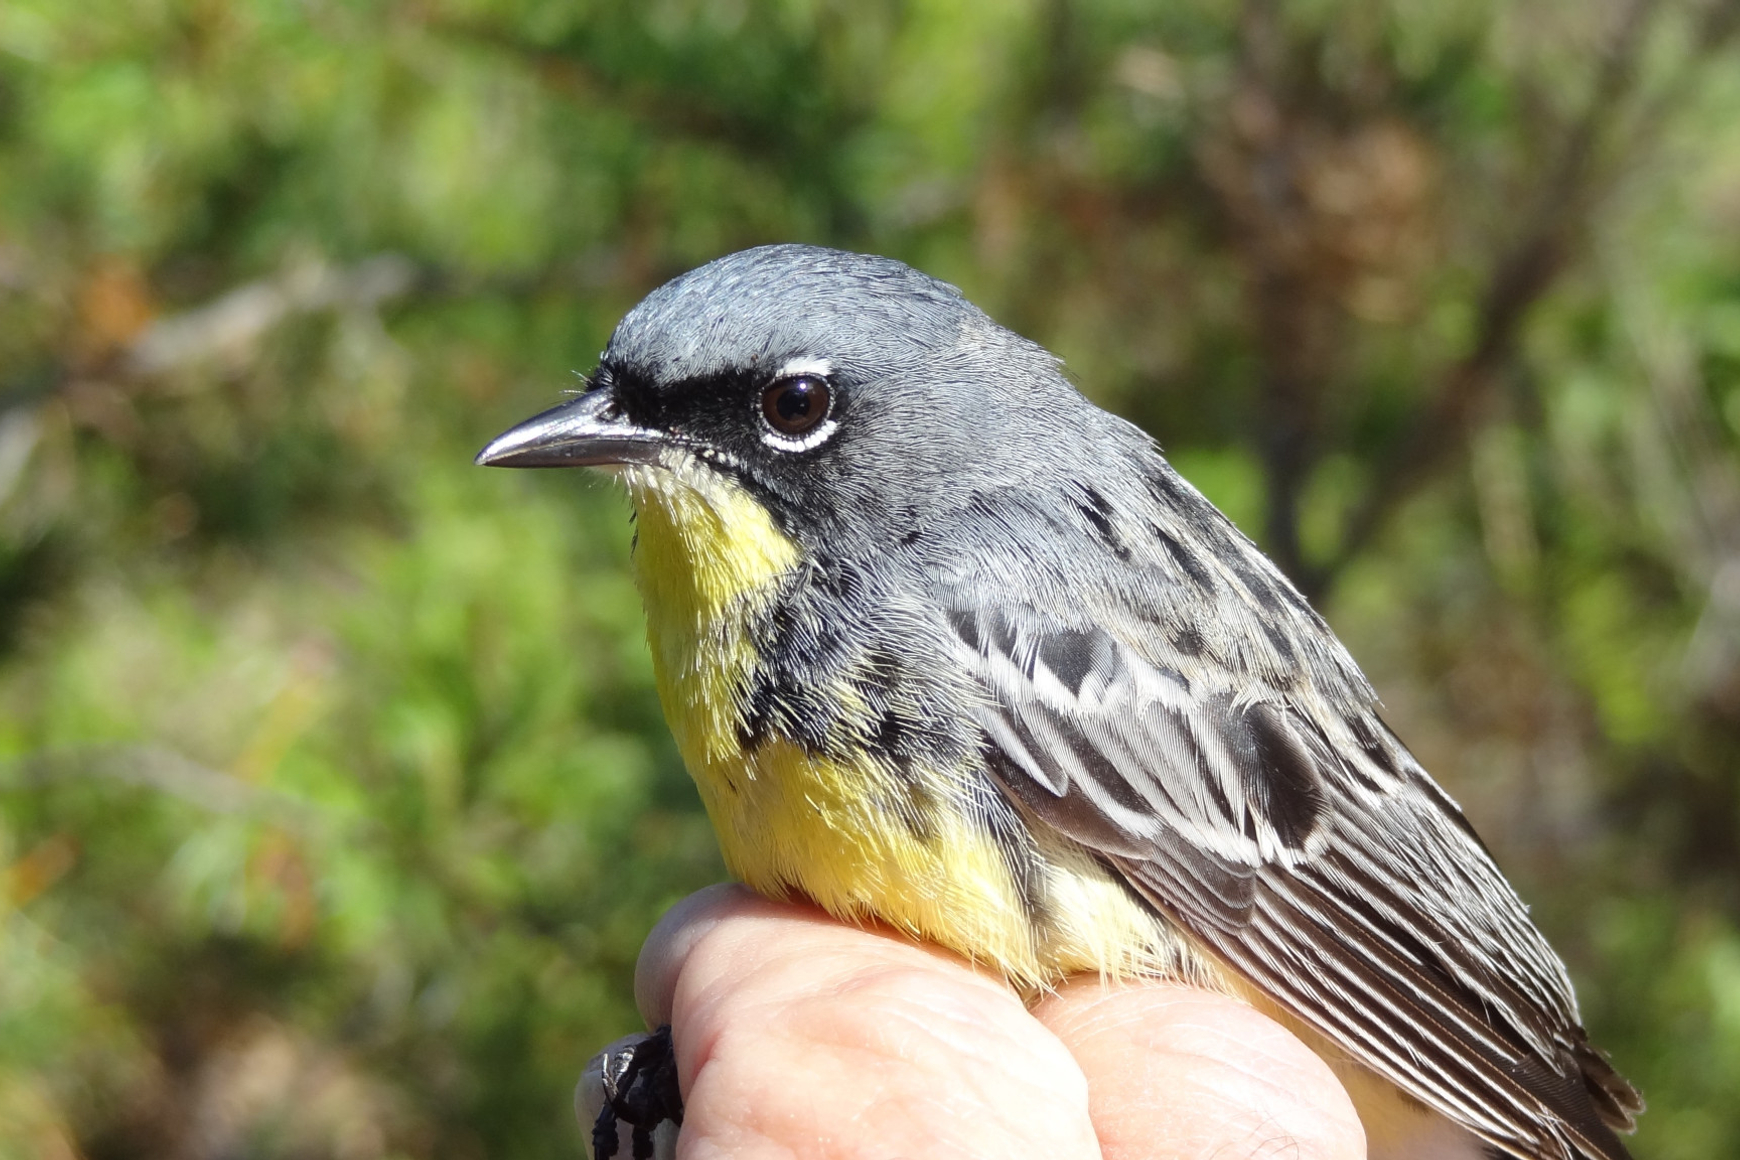 A small grey, yellow-breasted bird held in human hand